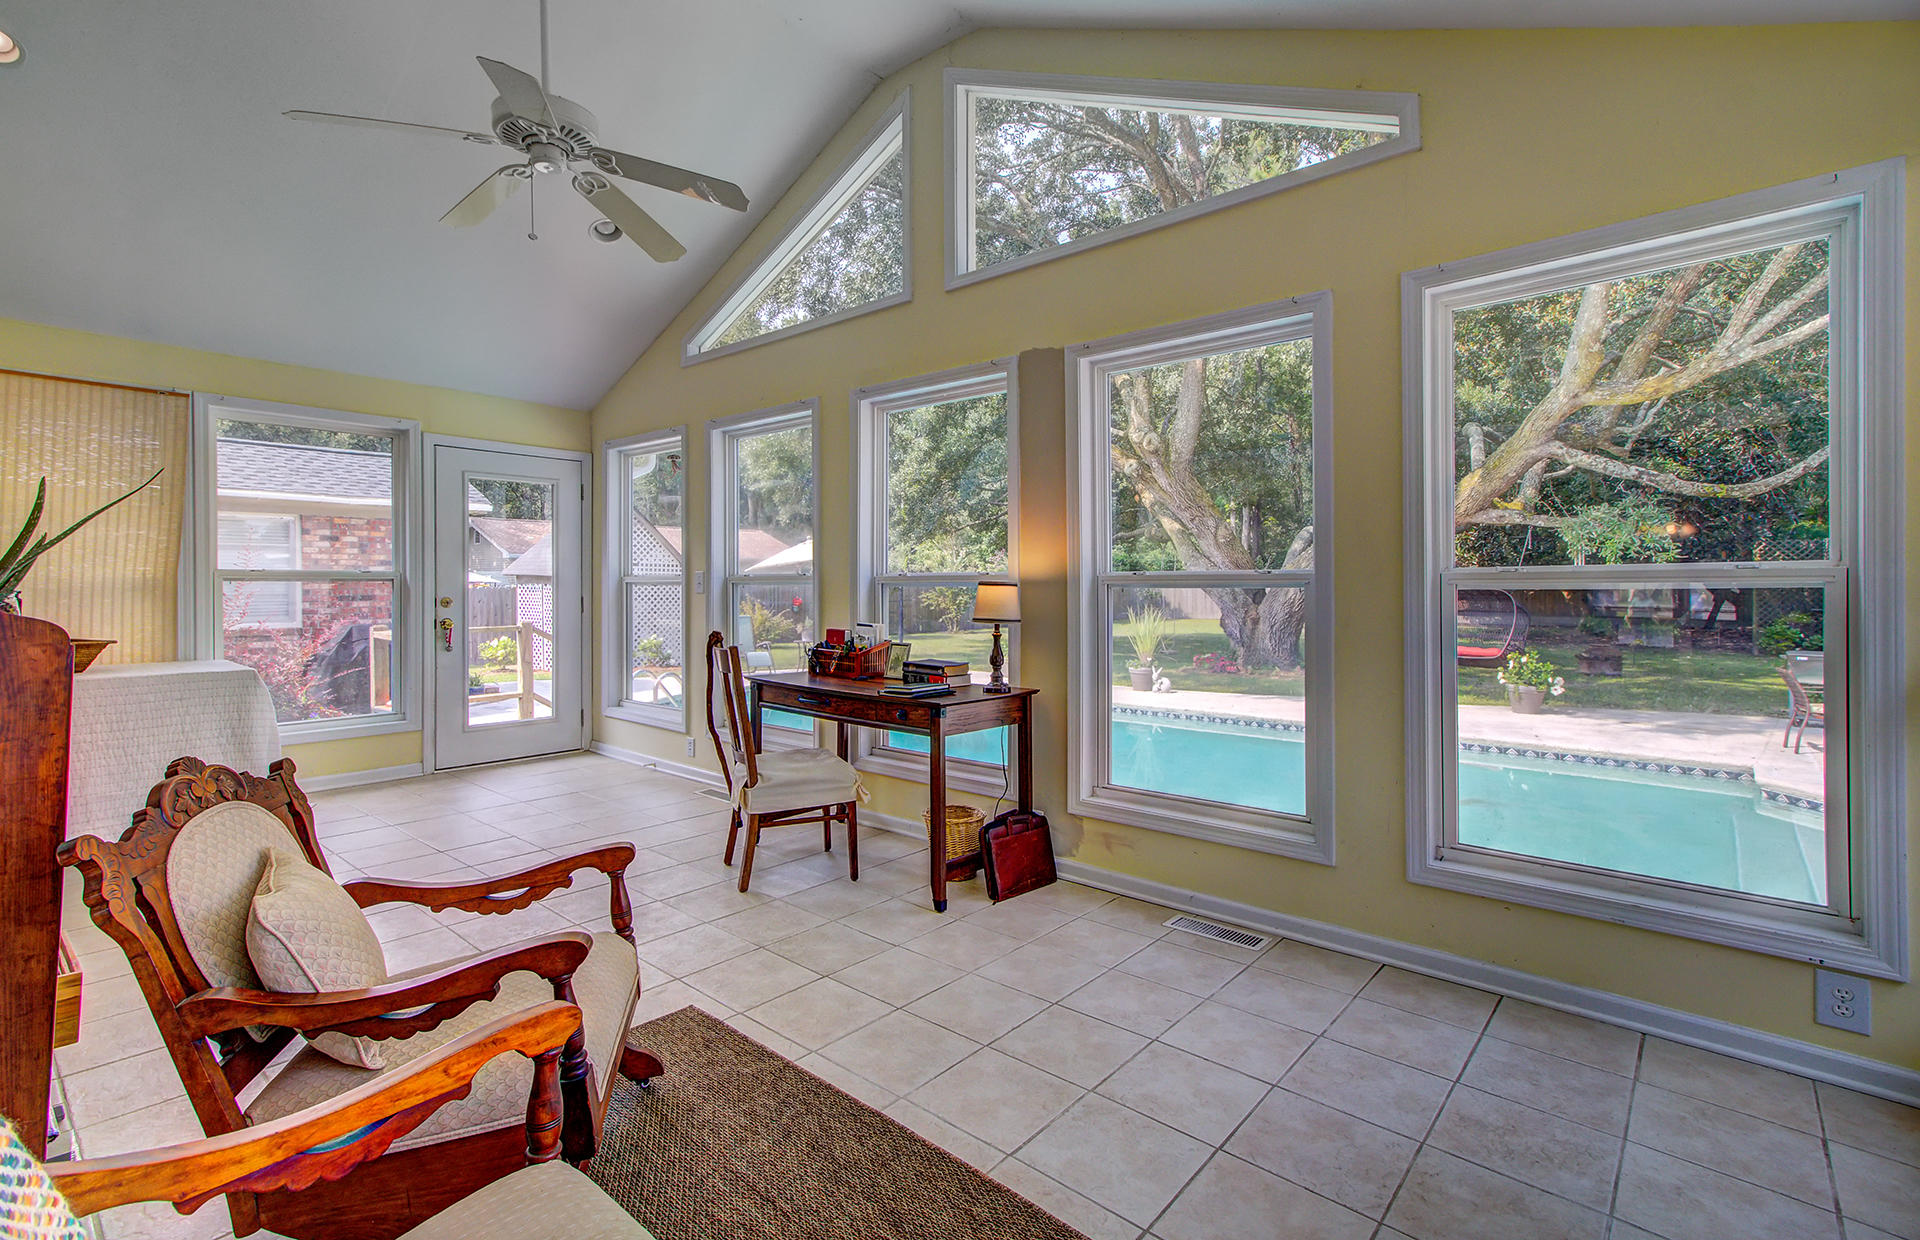 Sunset Shores Homes For Sale - 3646 Moonglow, Johns Island, SC - 16